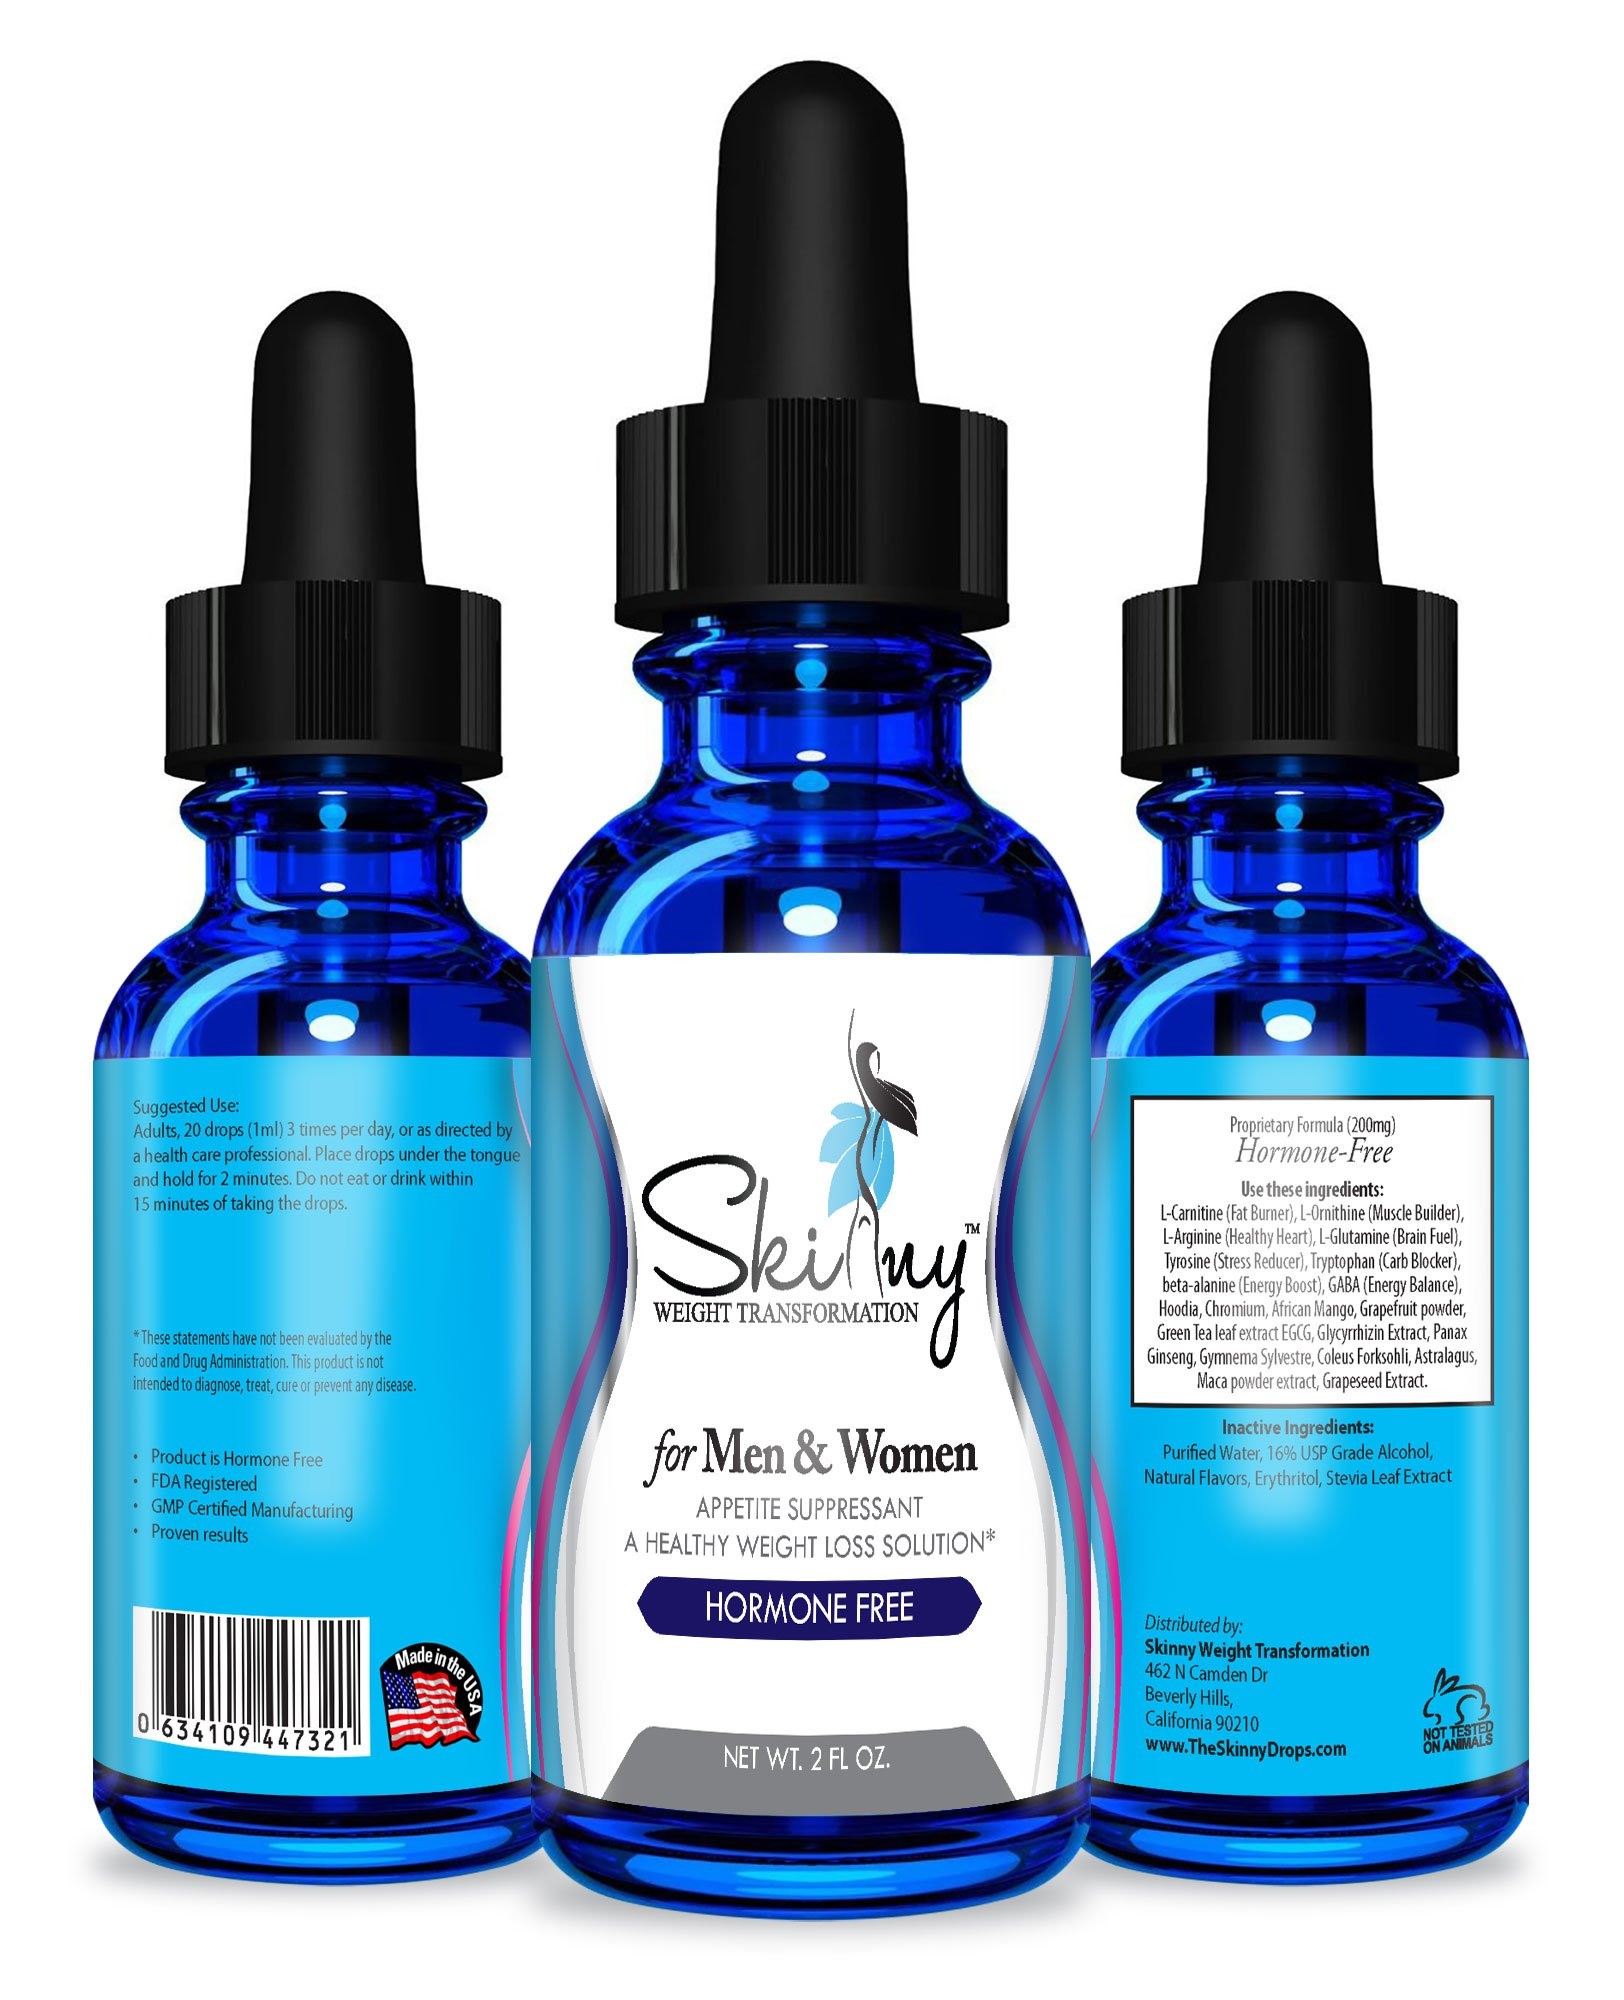 Weight Loss Diet Fat Burning Drops By Skinny Weight Transformation - Best Natural, Effective Formula - 20 Ingredients Blend - Boosts Metabolism & Suppresses Appetite - Lose up to 1 Pound A Day by Skinny Weight Transformation